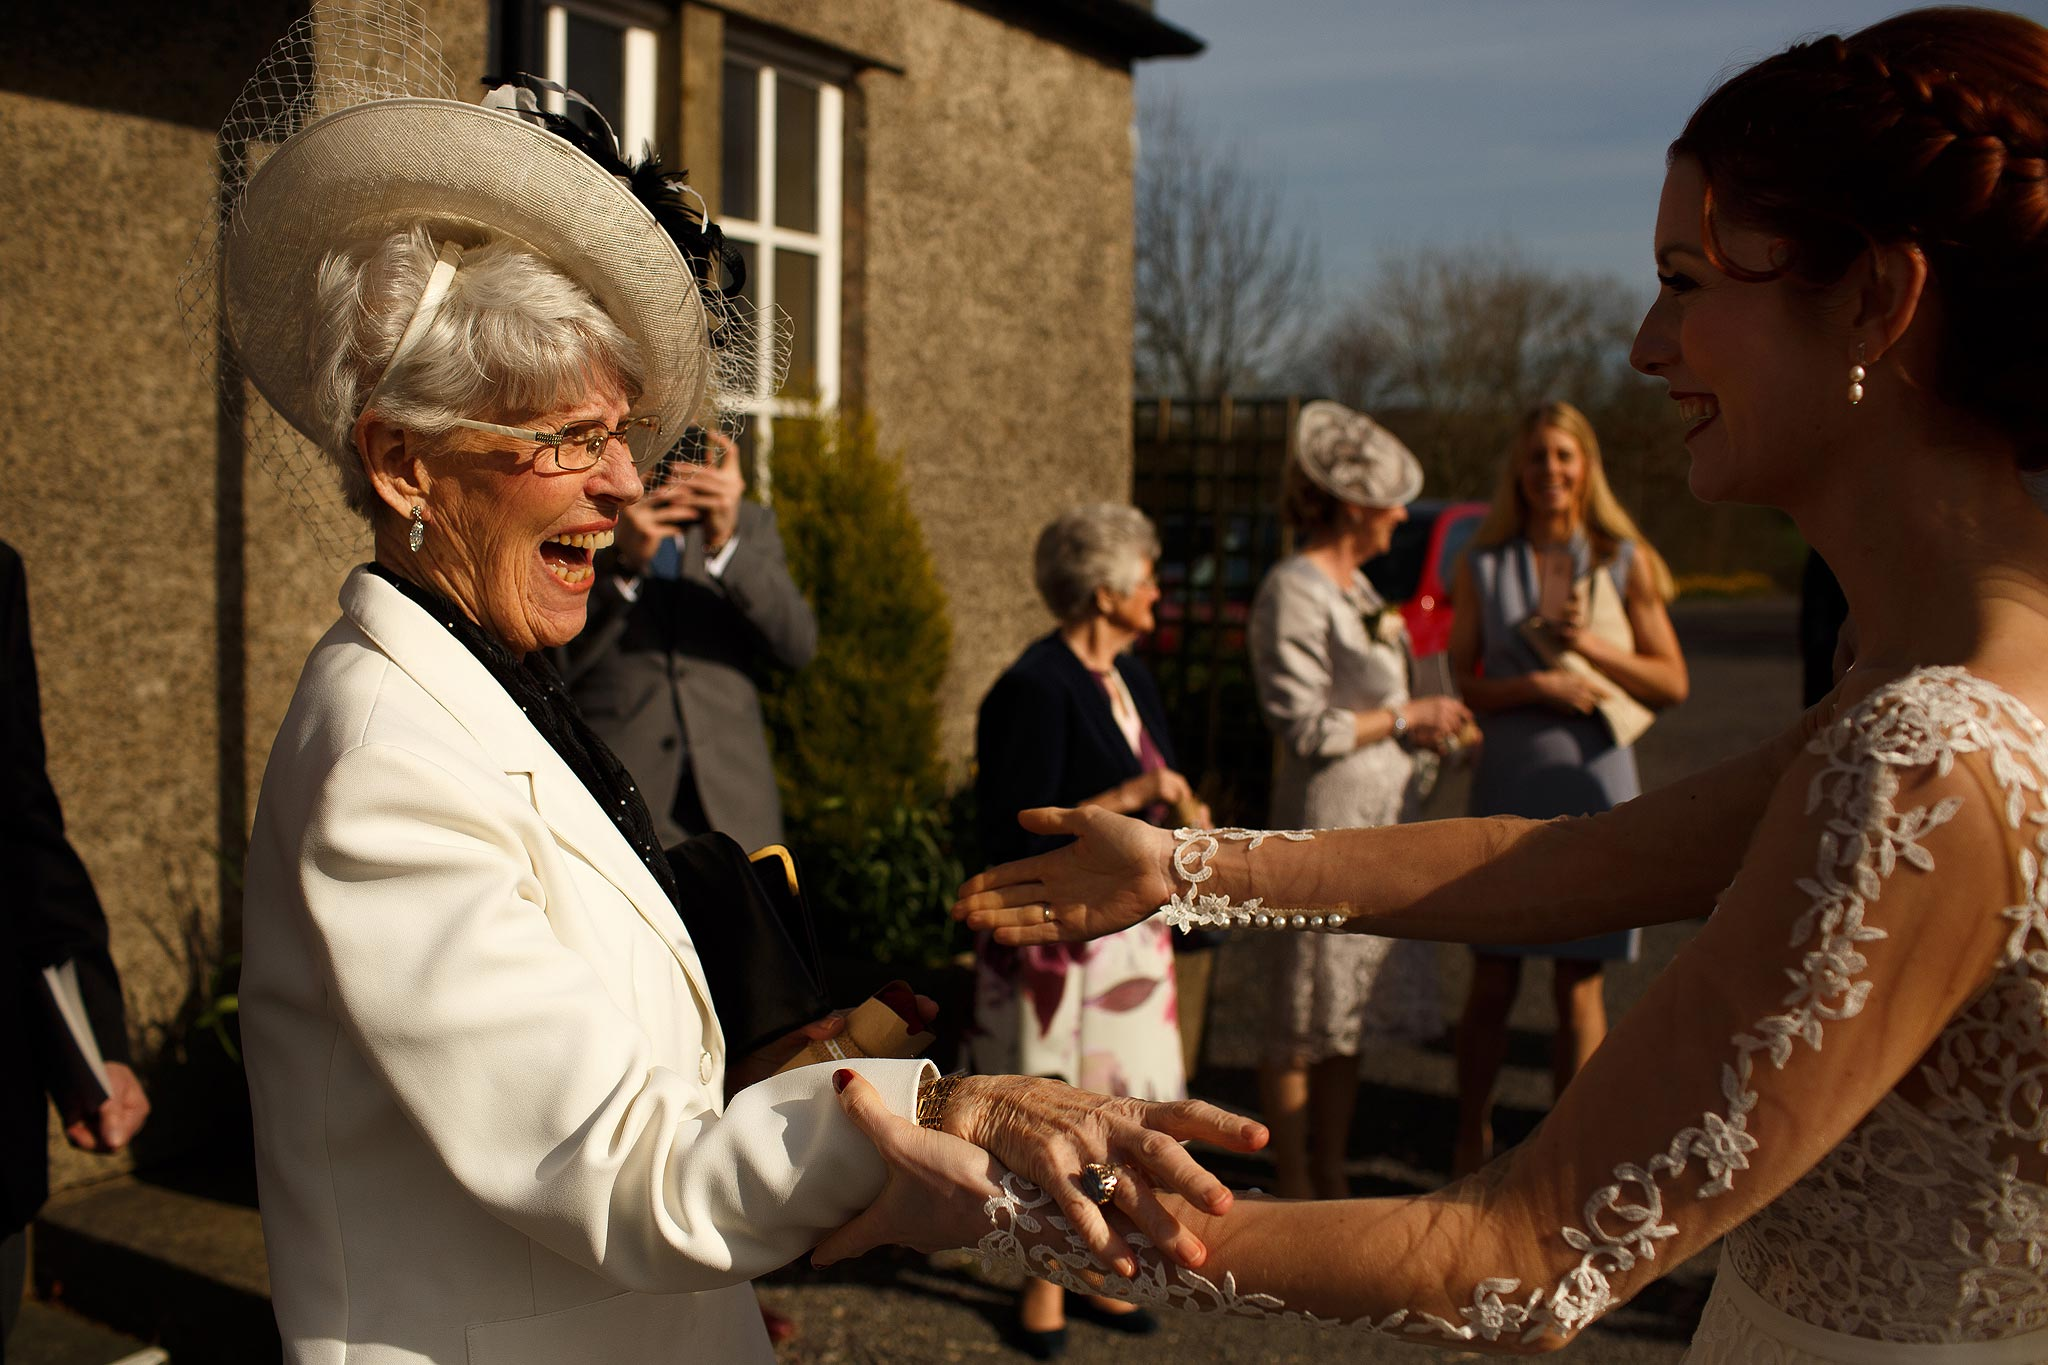 Guests congratulating the bride and groom after their wedding ceremony at Downham Village Hall